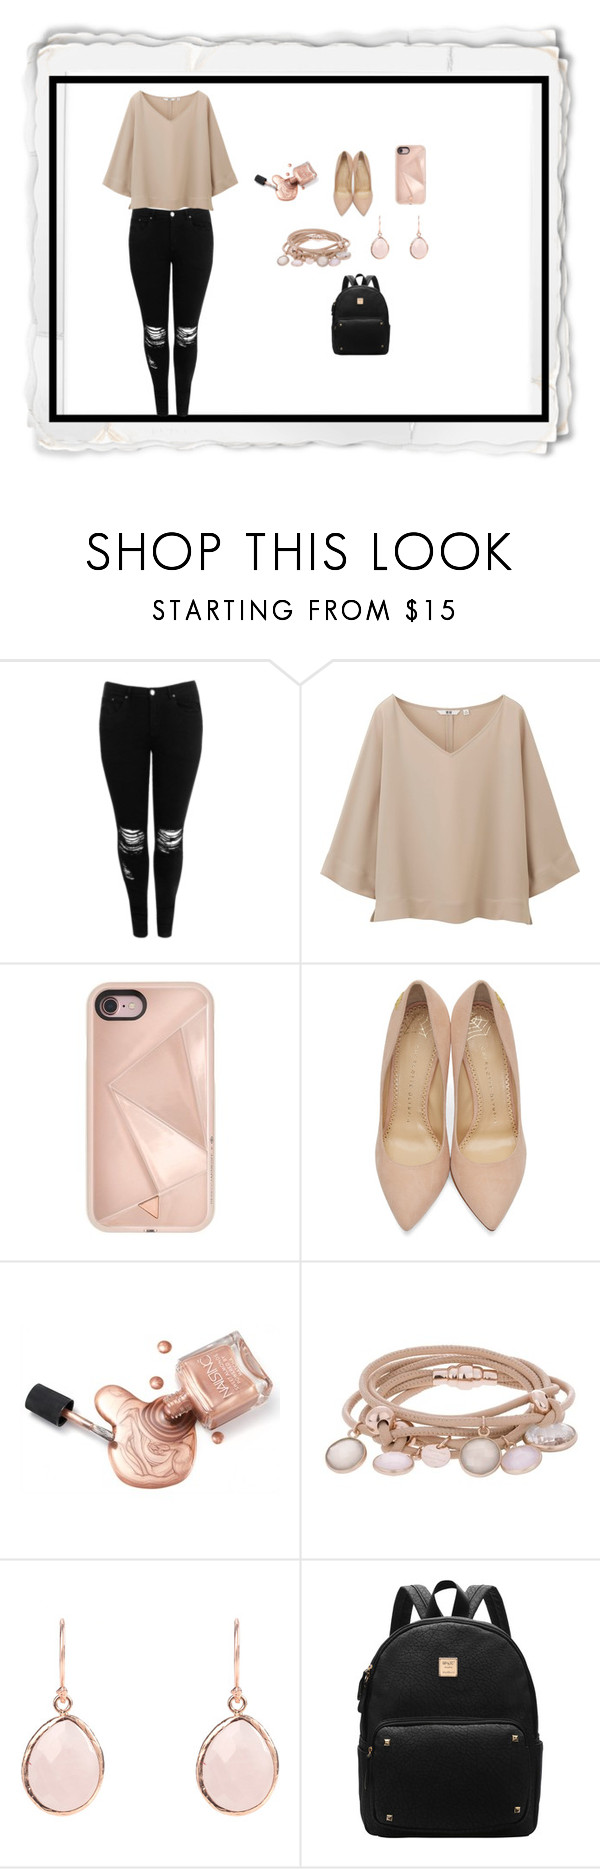 """""""Nude"""" by madinnmichelle ❤ liked on Polyvore featuring Boohoo, Uniqlo, Rebecca Minkoff, Charlotte Olympia and Marjana von Berlepsch"""